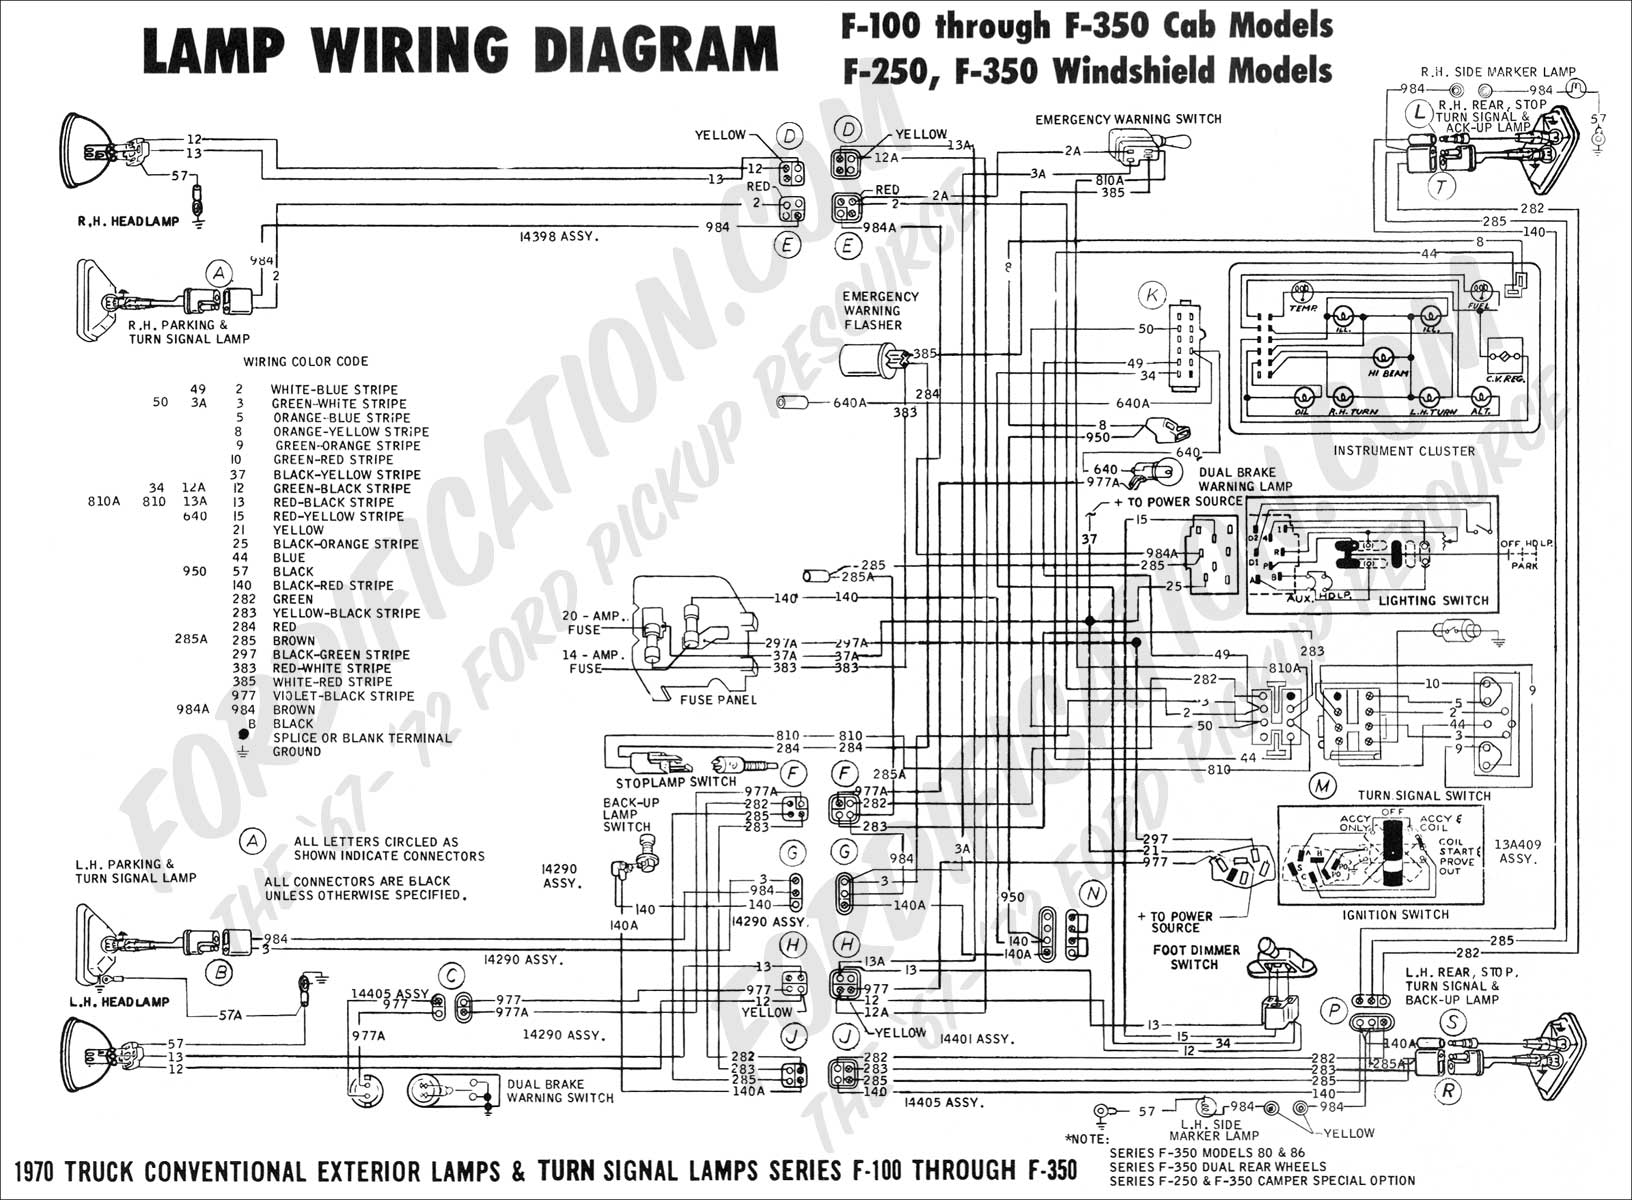 peterbilt horn wiring diagram with 1291890 Turn Signal Cam Wiring on 1useo 02 Dodge Grand Caravan W 3 3l V6 Engine Will Not Start together with 1976 Triumph Spitfire Wiring Diagram also 89 Mustang Headlight Problems furthermore Question 6858 likewise Steering Suspension Diagrams.